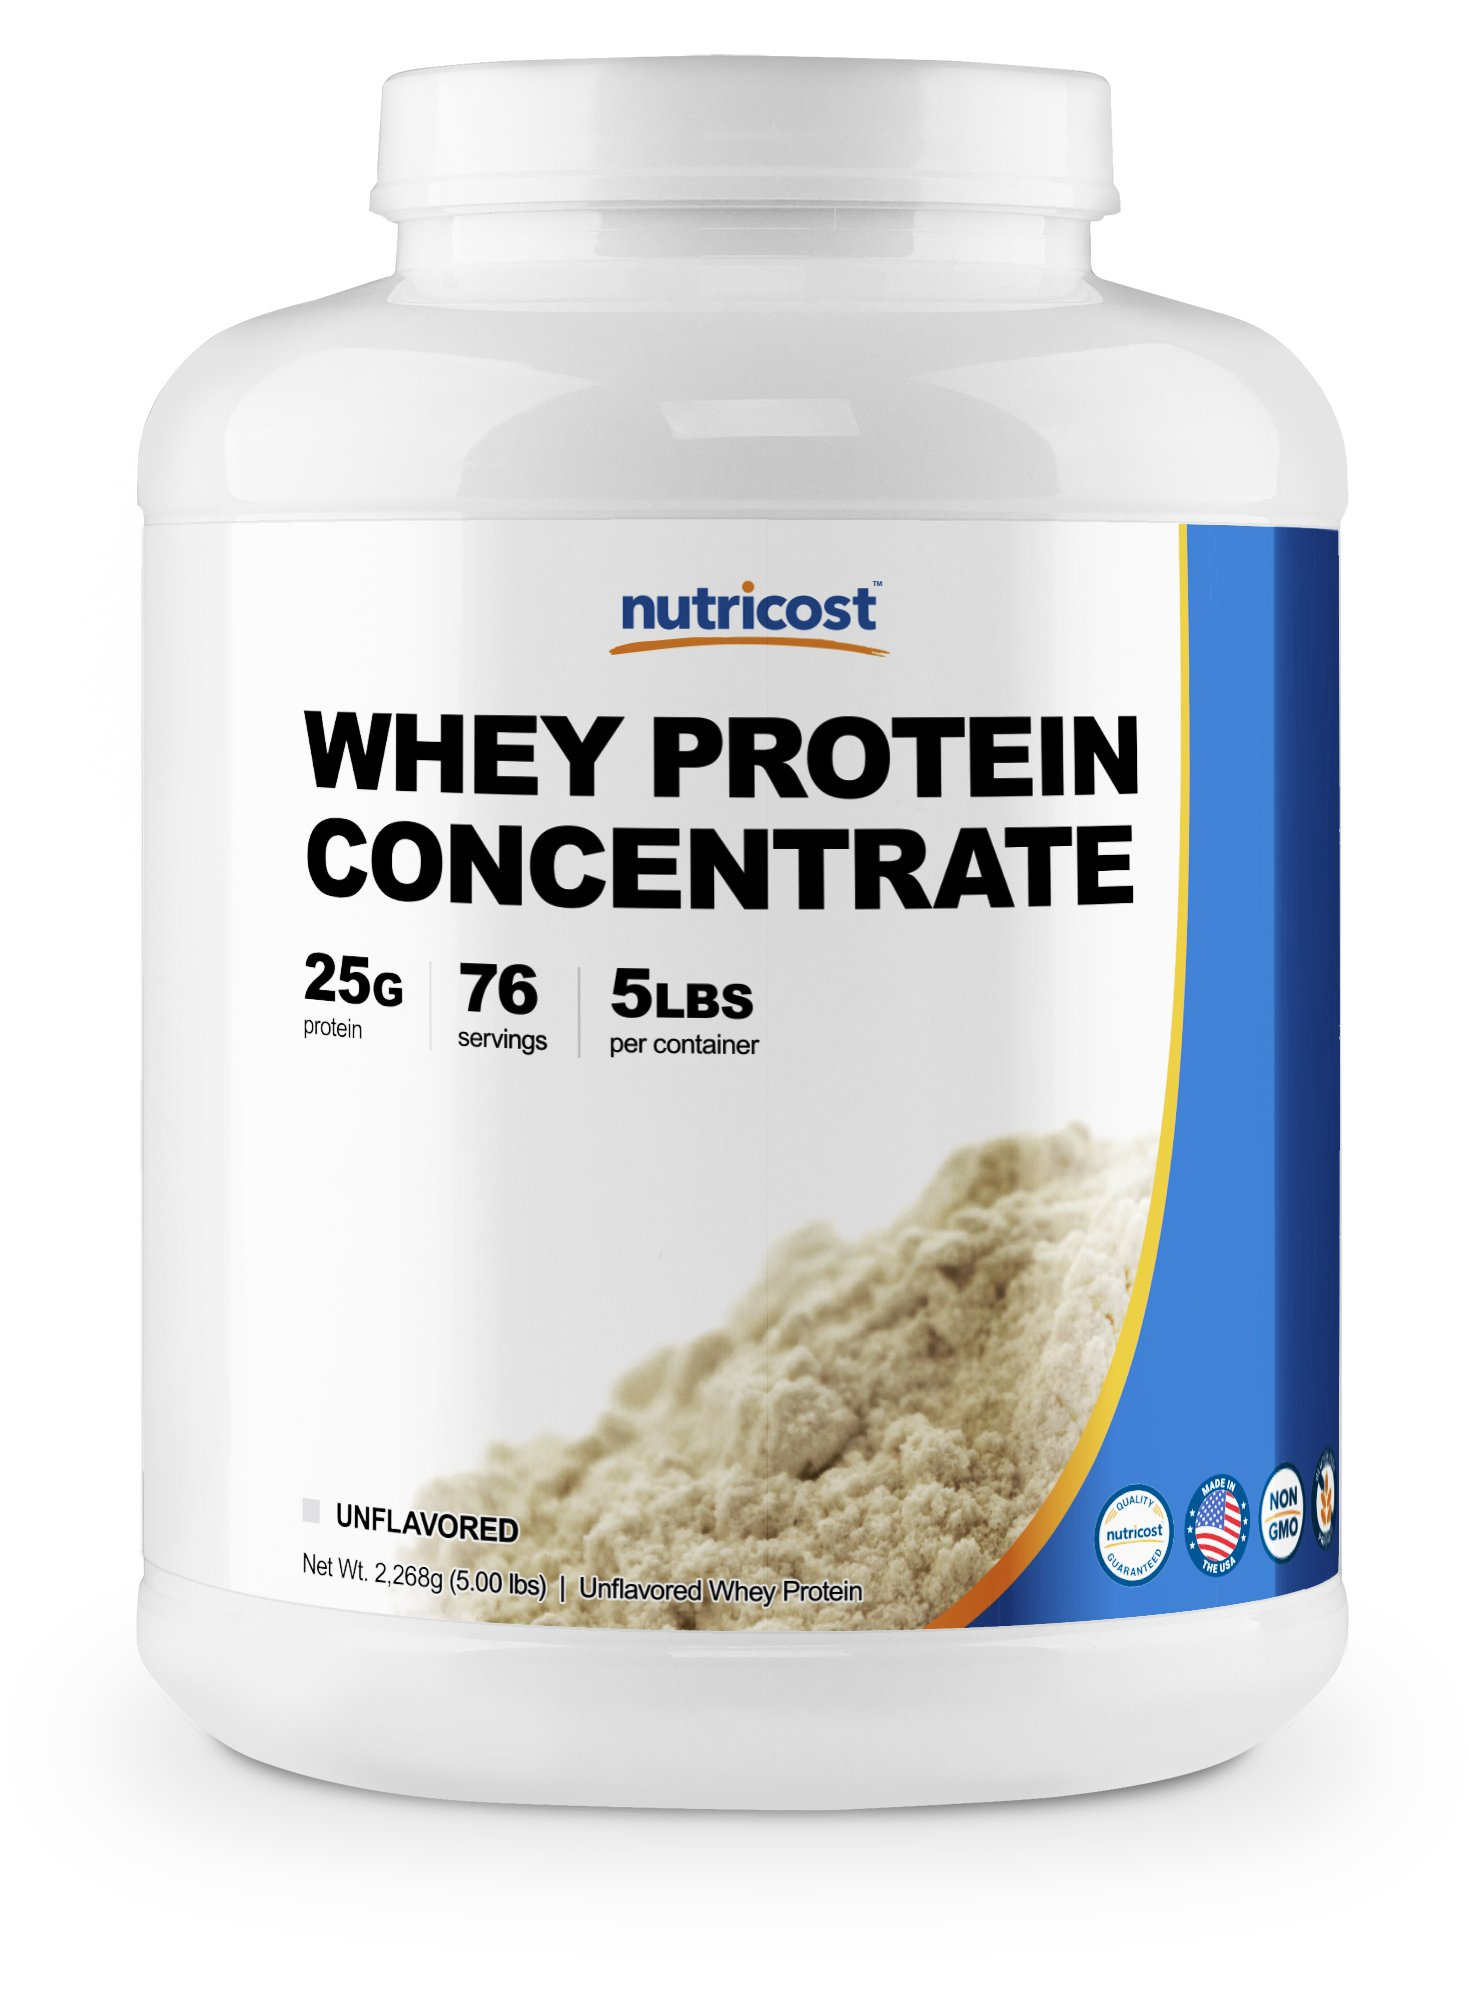 Nutricost Whey Protein Concentrate (Unflavored) 5LBS by Nutricost